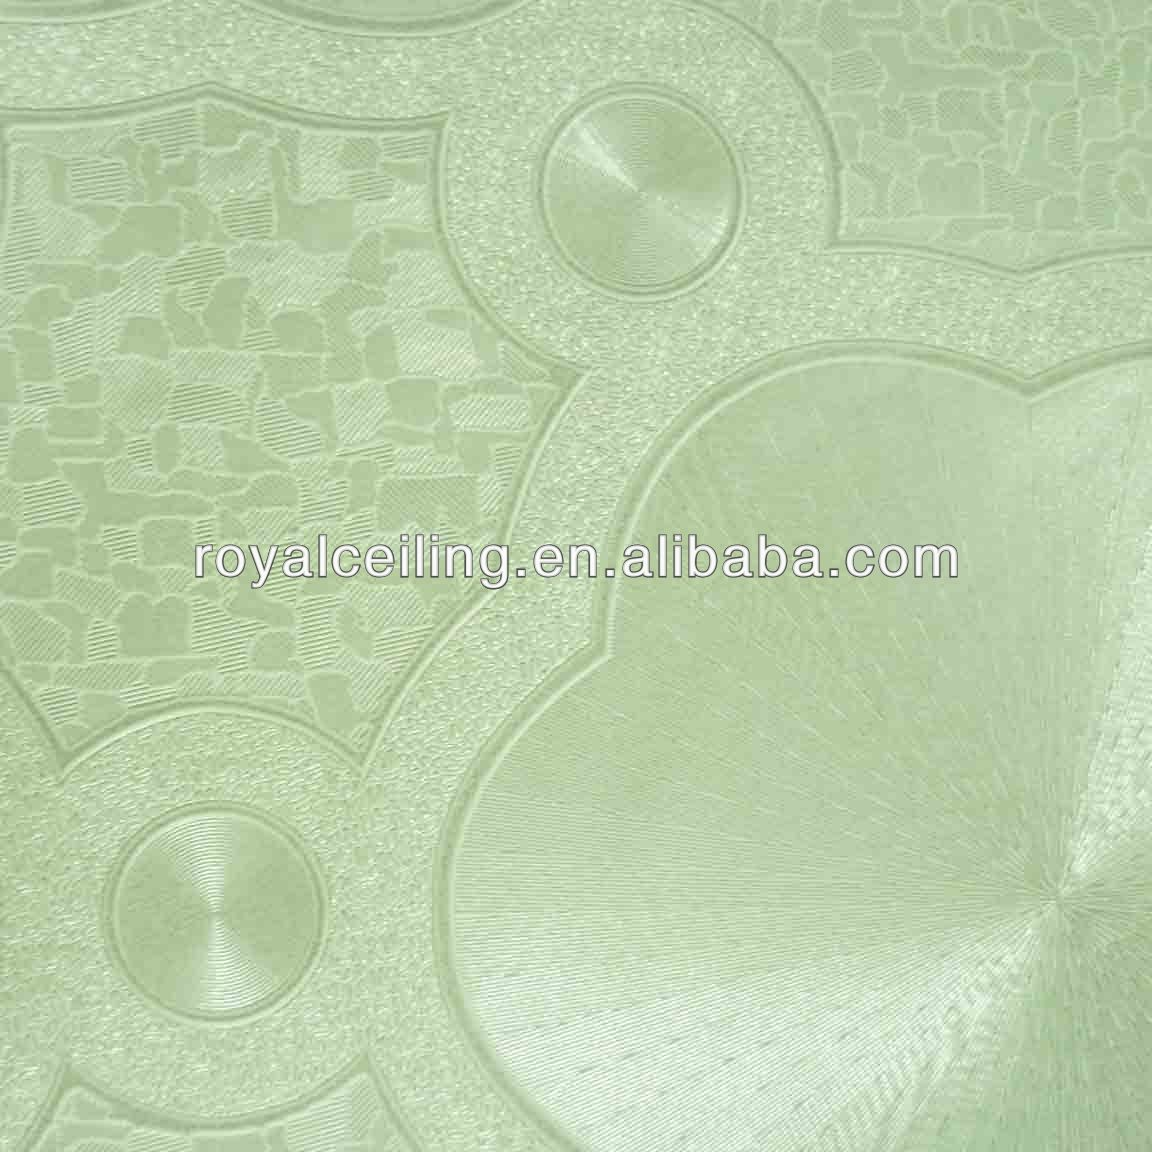 Insulated pvc ceiling tiles insulated pvc ceiling tiles suppliers insulated pvc ceiling tiles insulated pvc ceiling tiles suppliers and manufacturers at alibaba dailygadgetfo Images